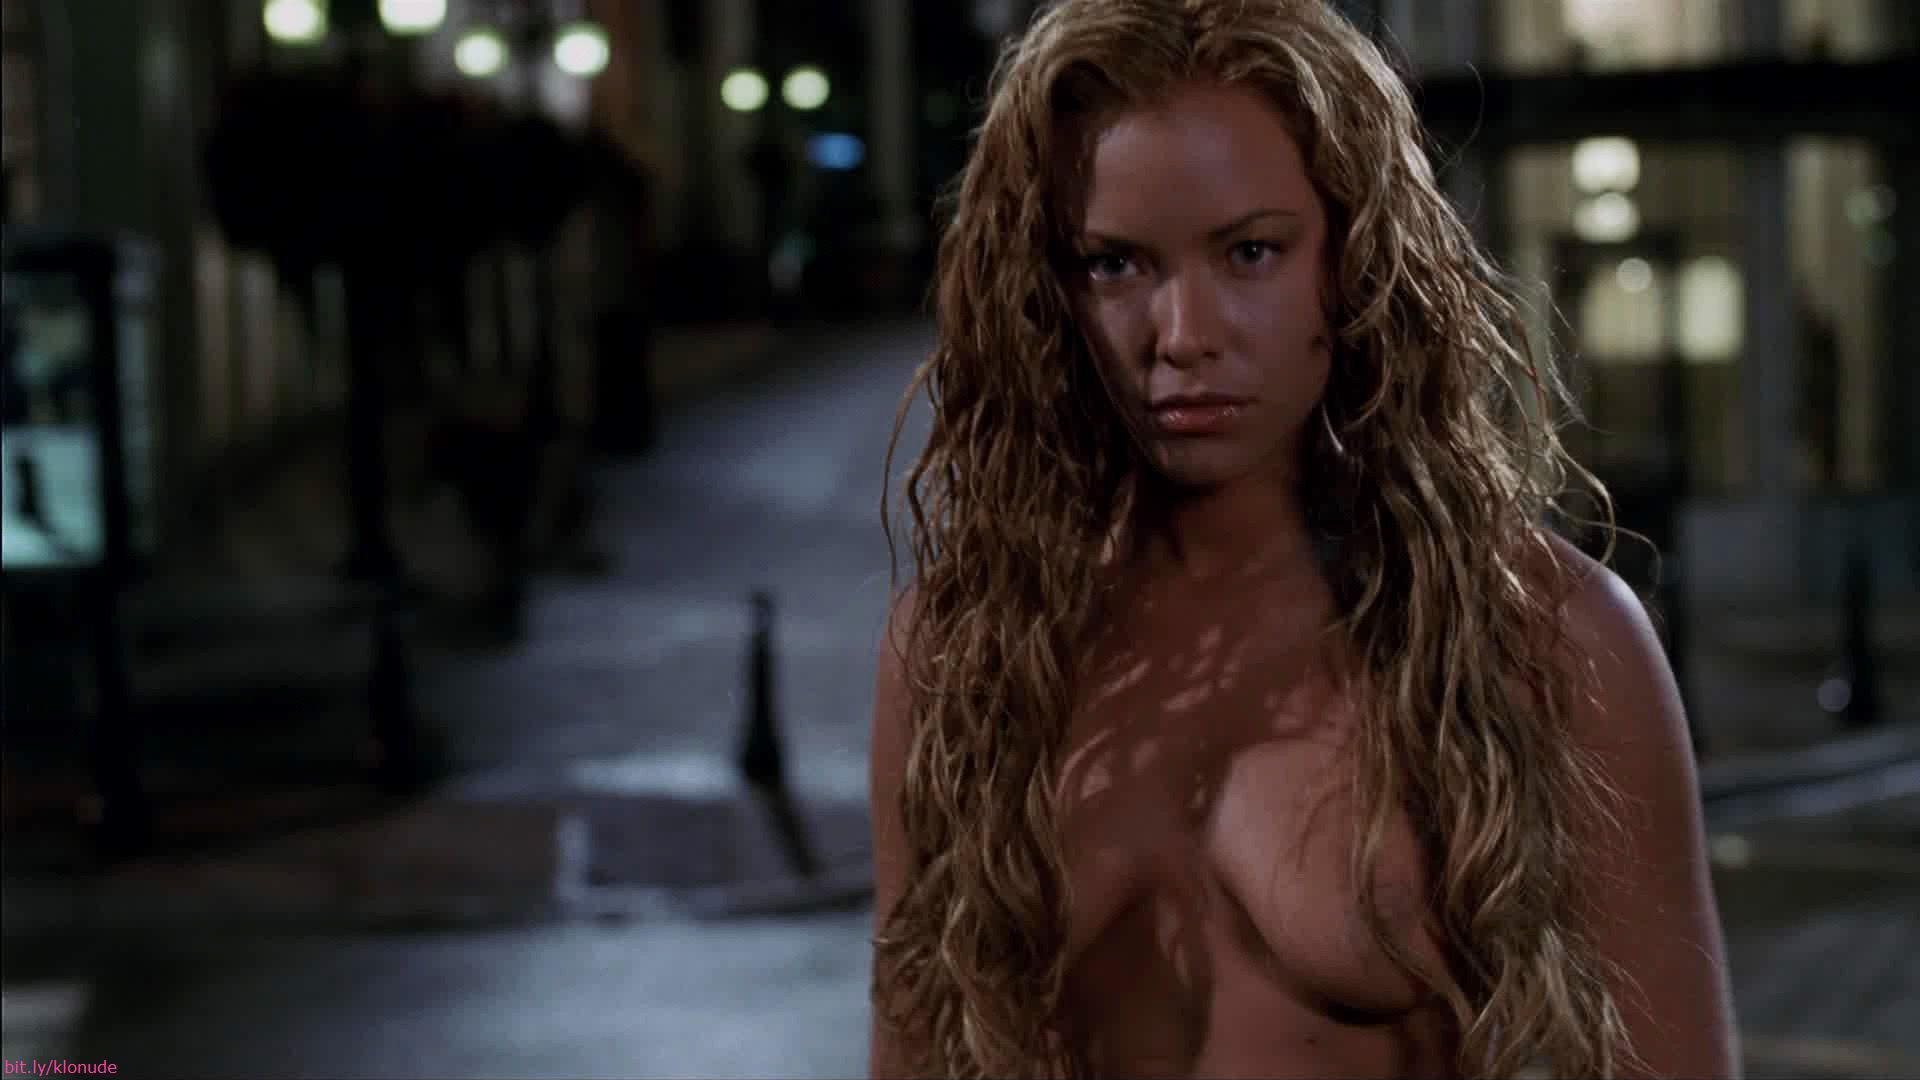 Turns out? Christanna loken nude or topless agree, very